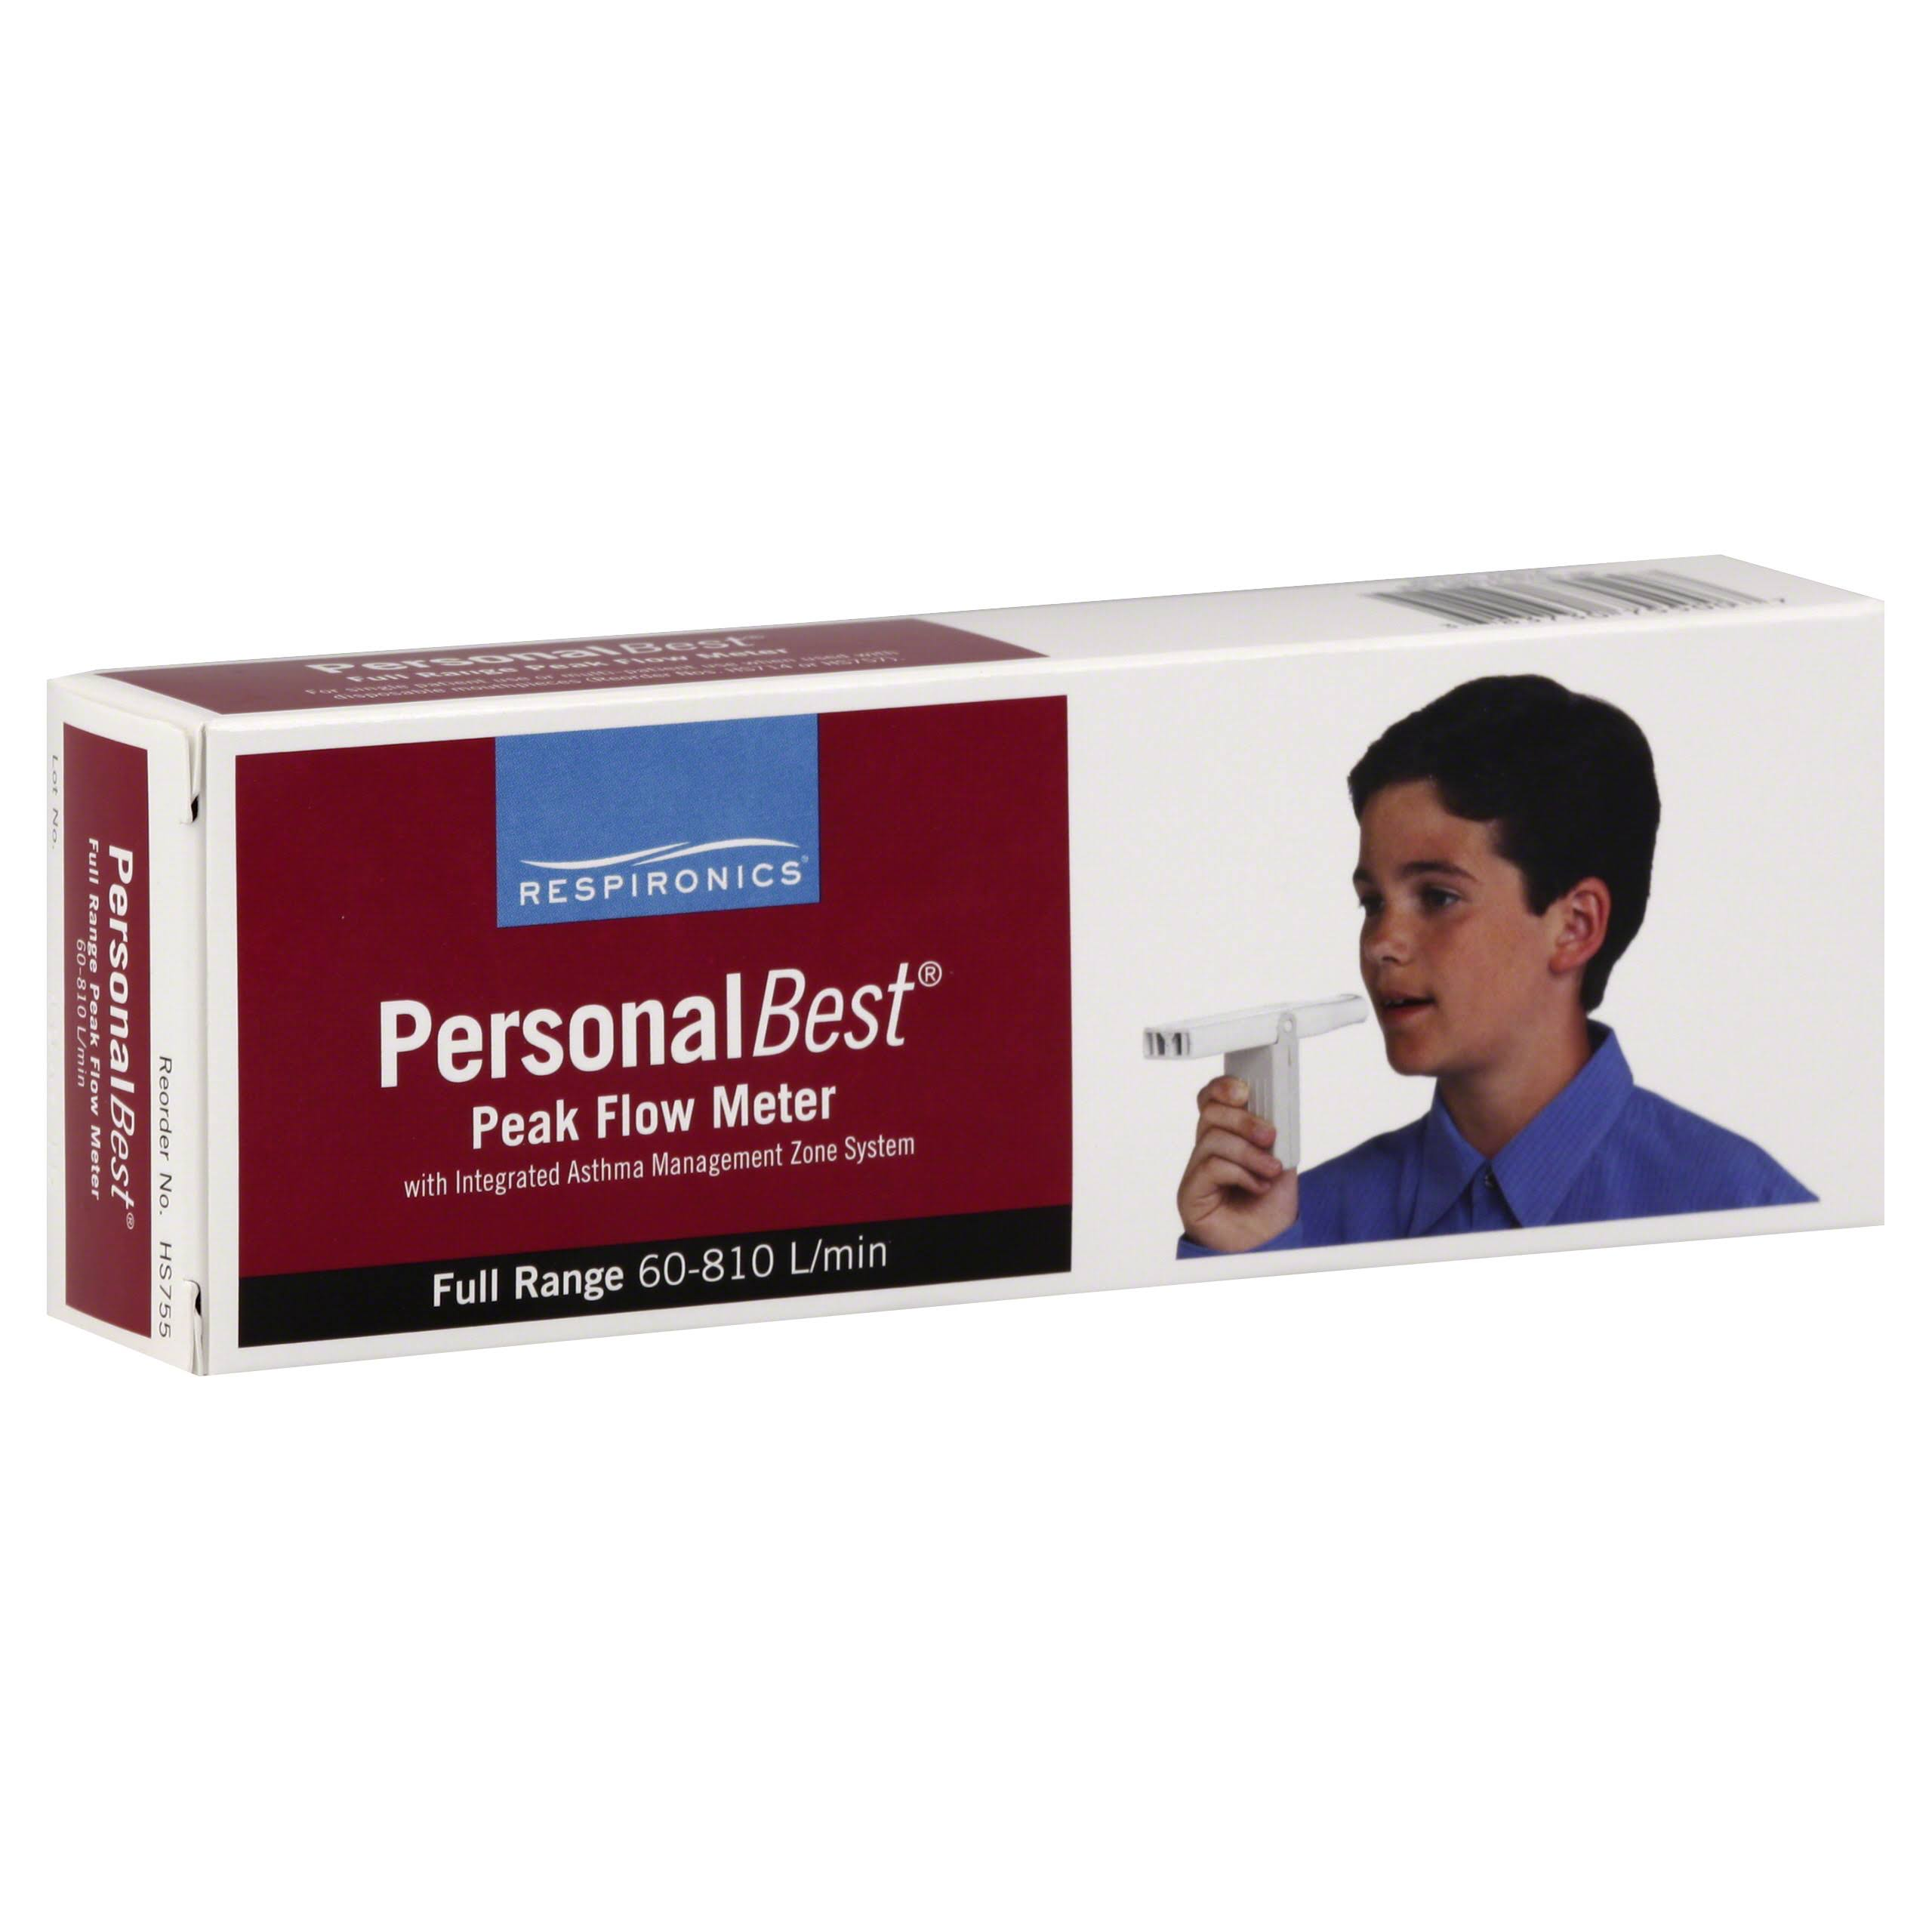 Personal Best Personal Best Peak Flow Meter, with Integrated Asthma Management Zone System